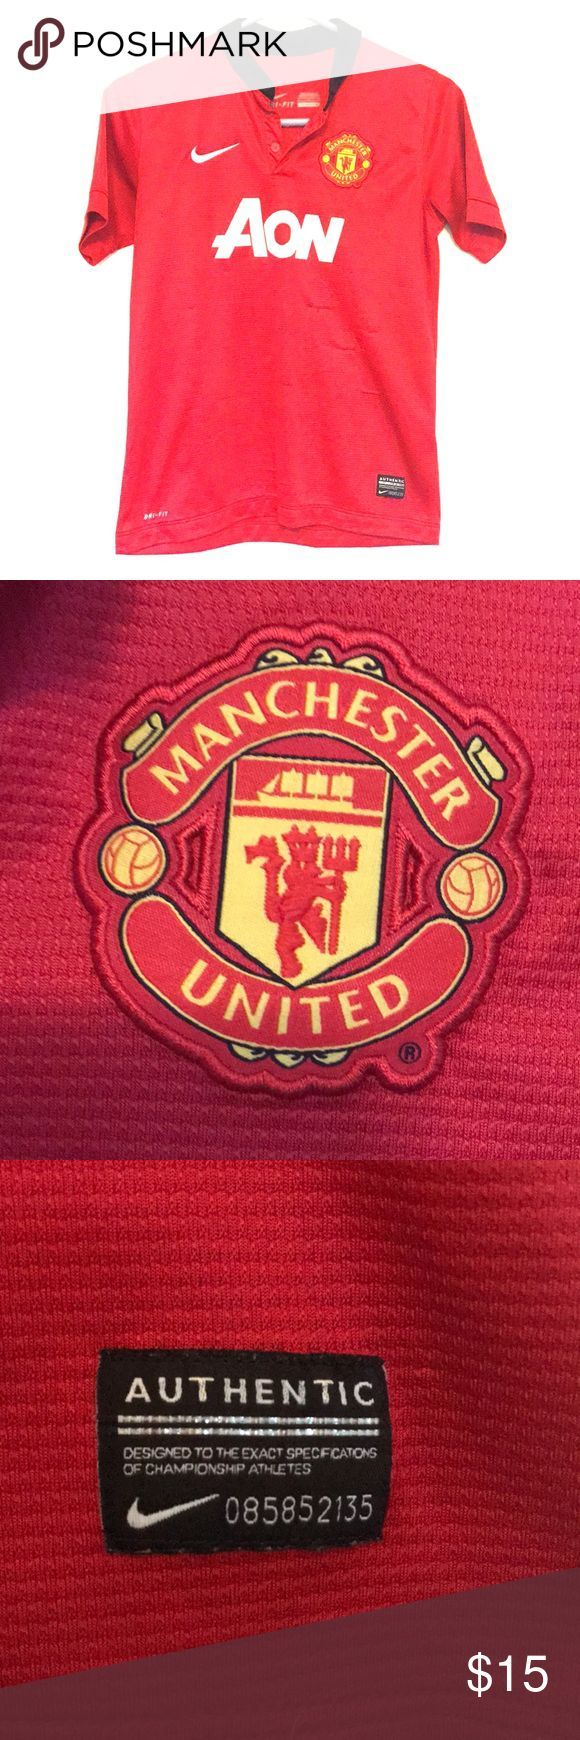 Authentic Manchester United Soccer ⚽️ Jersey Authentic Manchester United Soccer ⚽️ Jersey.  Has some pulls in the fabric (see pics). Price reflects that   Nike Dri Fit. No stains or tears. Comes from a non smoking home Nike Shirts & Tops